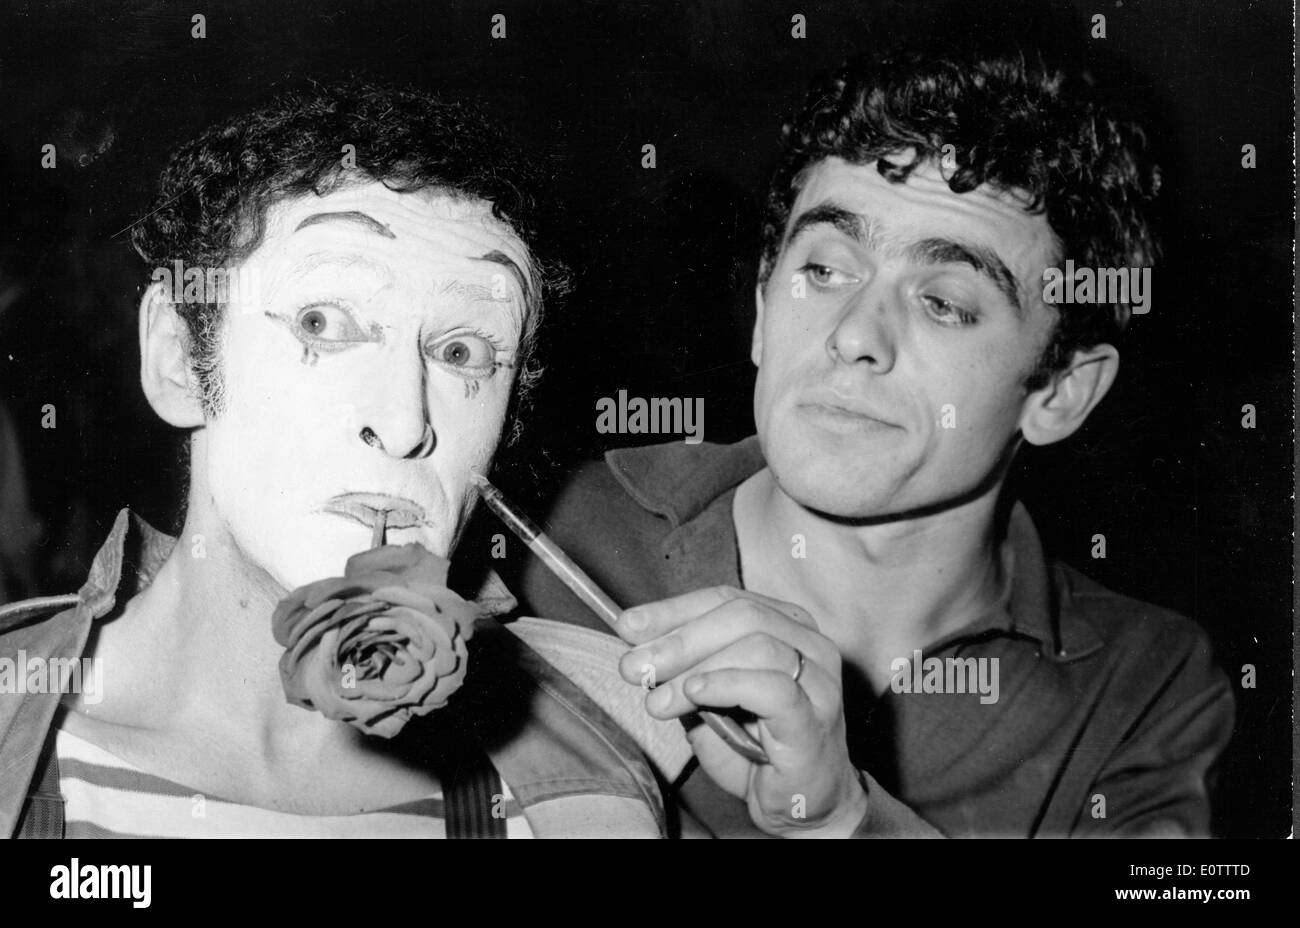 French mime Marcel Marceau getting his makeup done for a performance - Stock Image